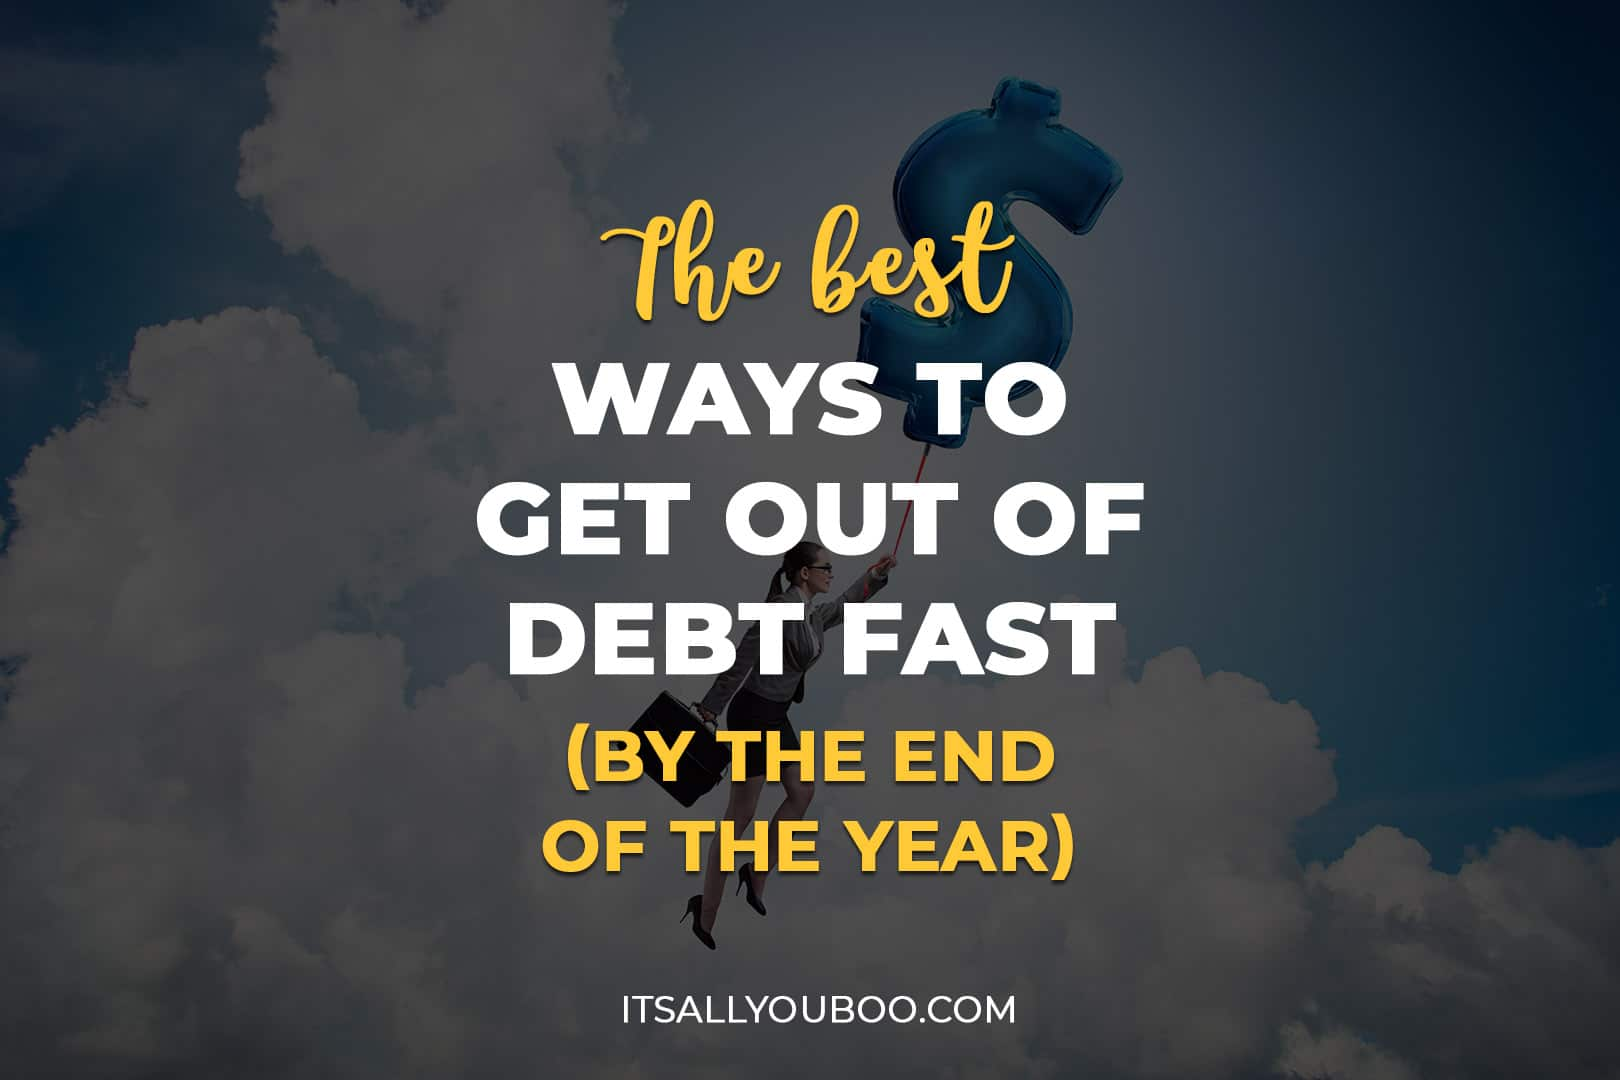 The Best Ways To Get Out Of Debt Fast (By The End Of The Year)